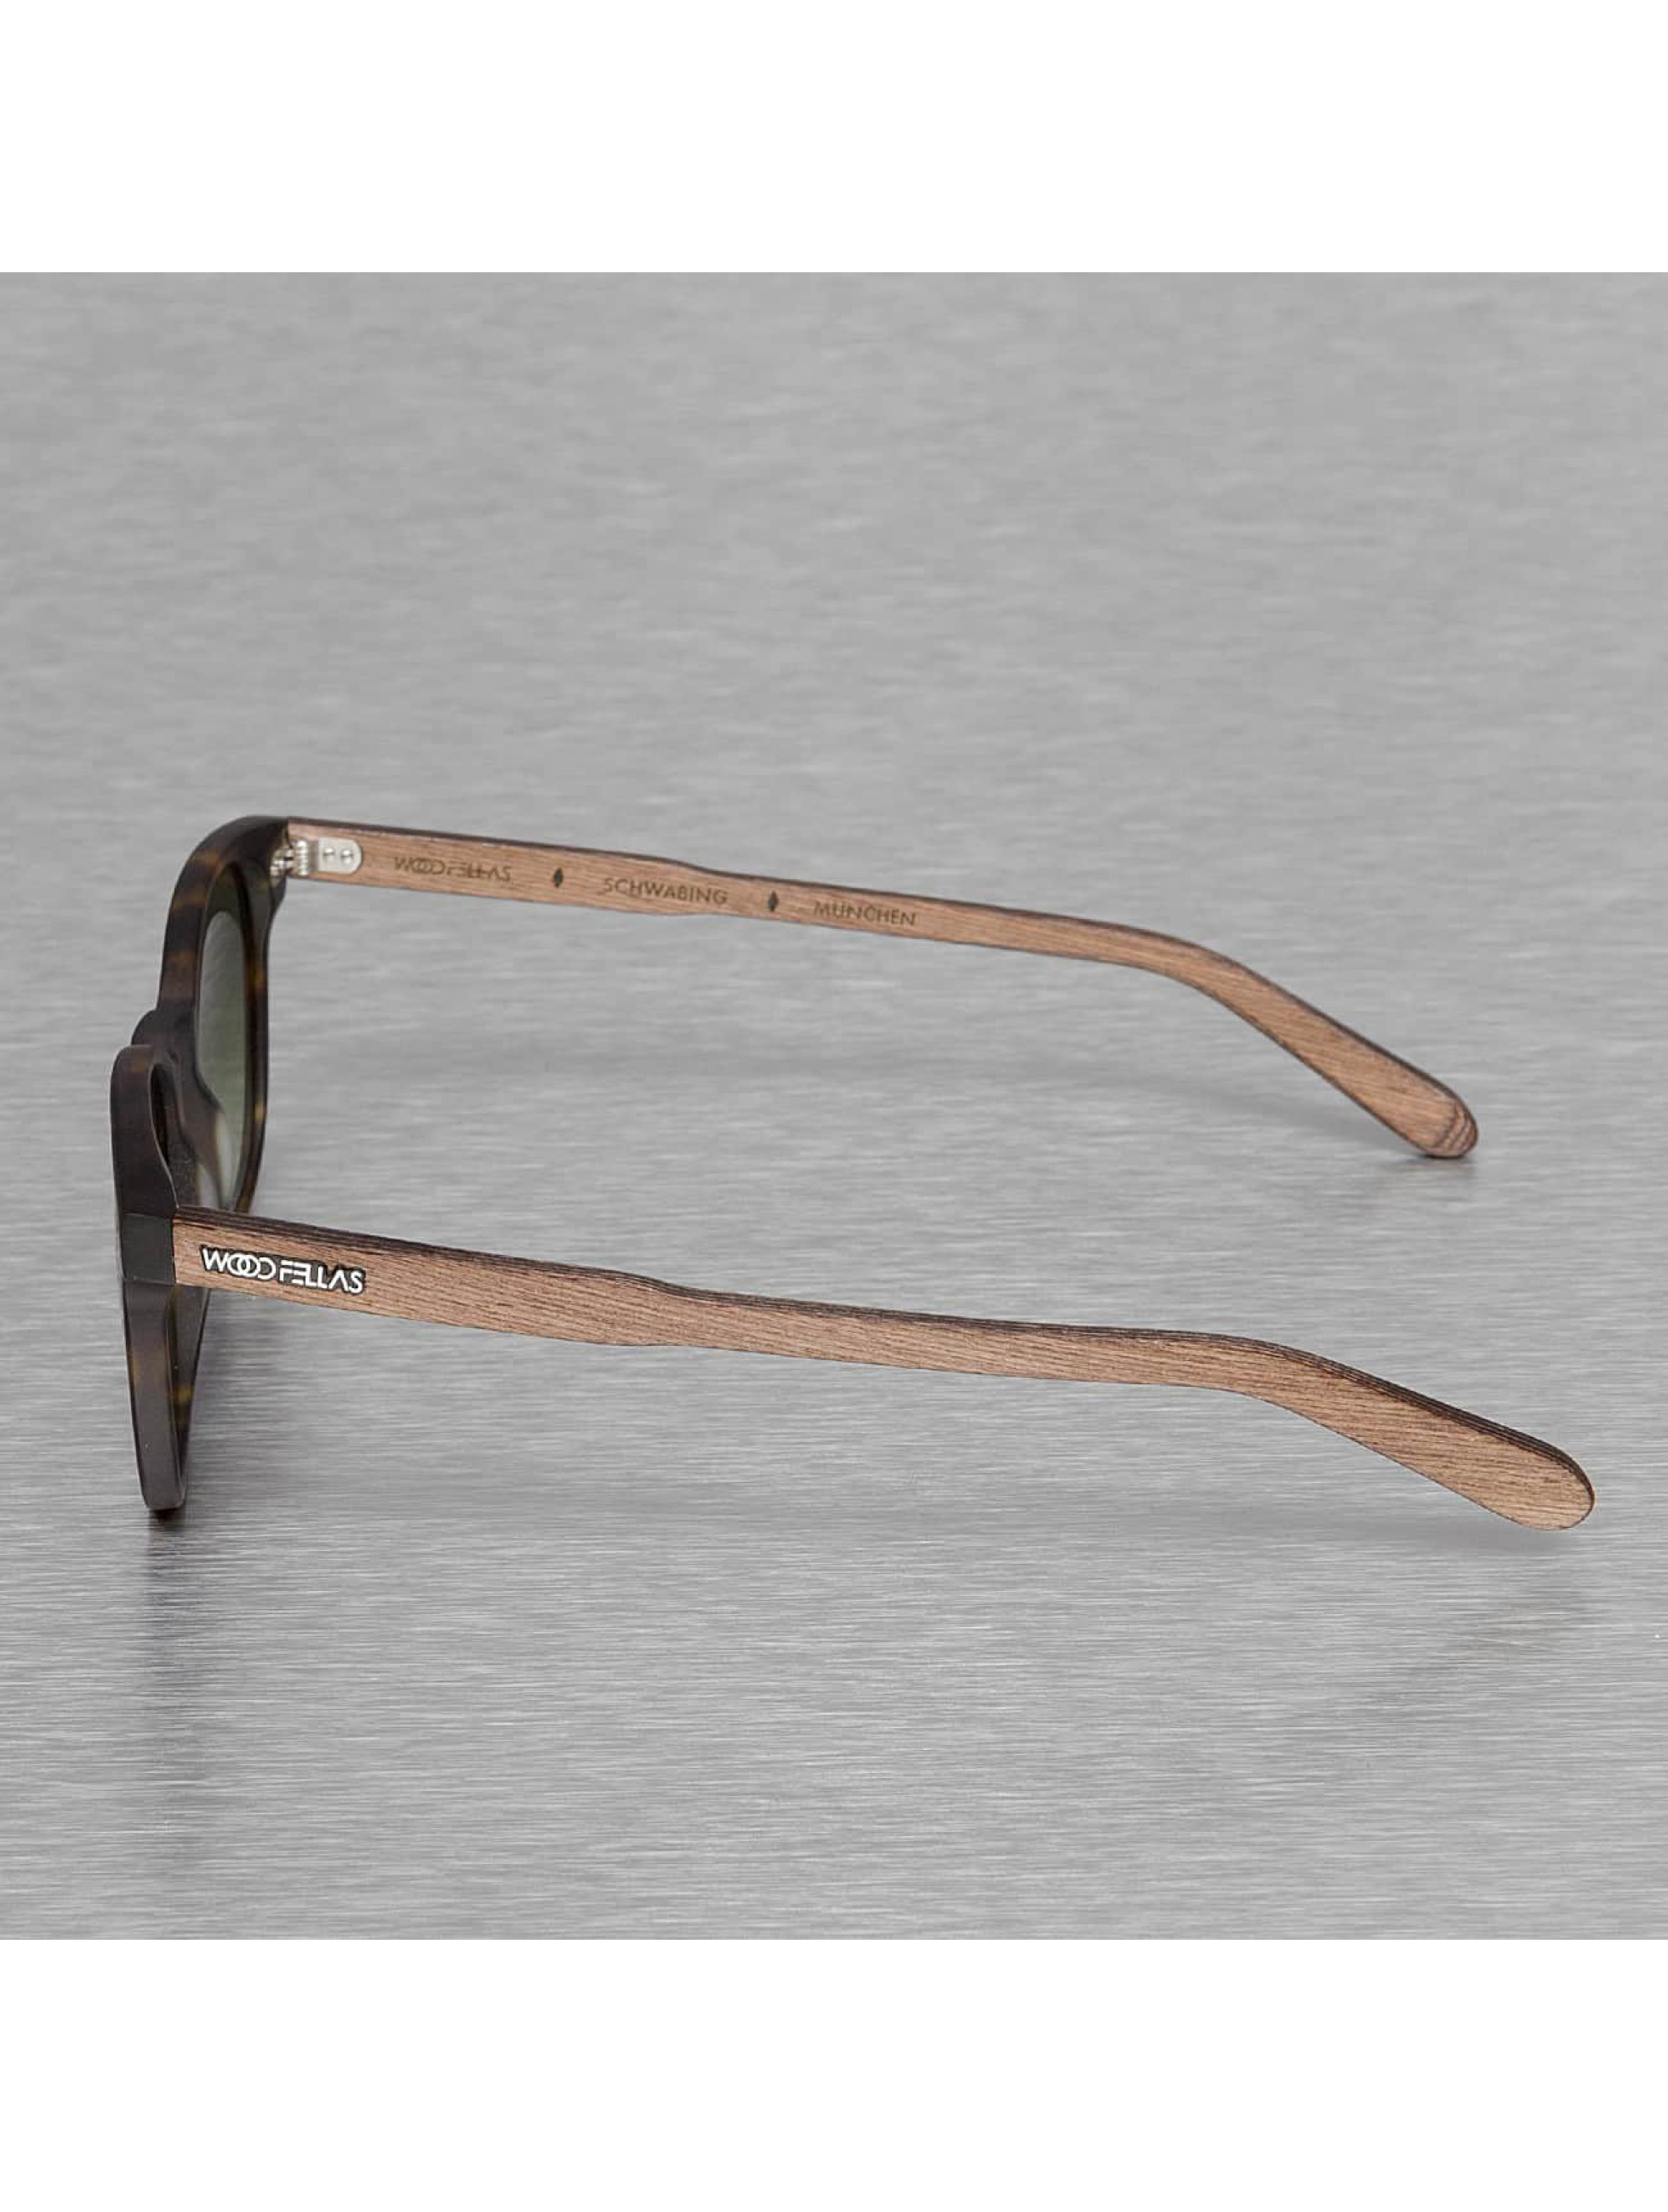 Wood Fellas Eyewear Очки Eyewear Schwabing Polarized Mirror коричневый